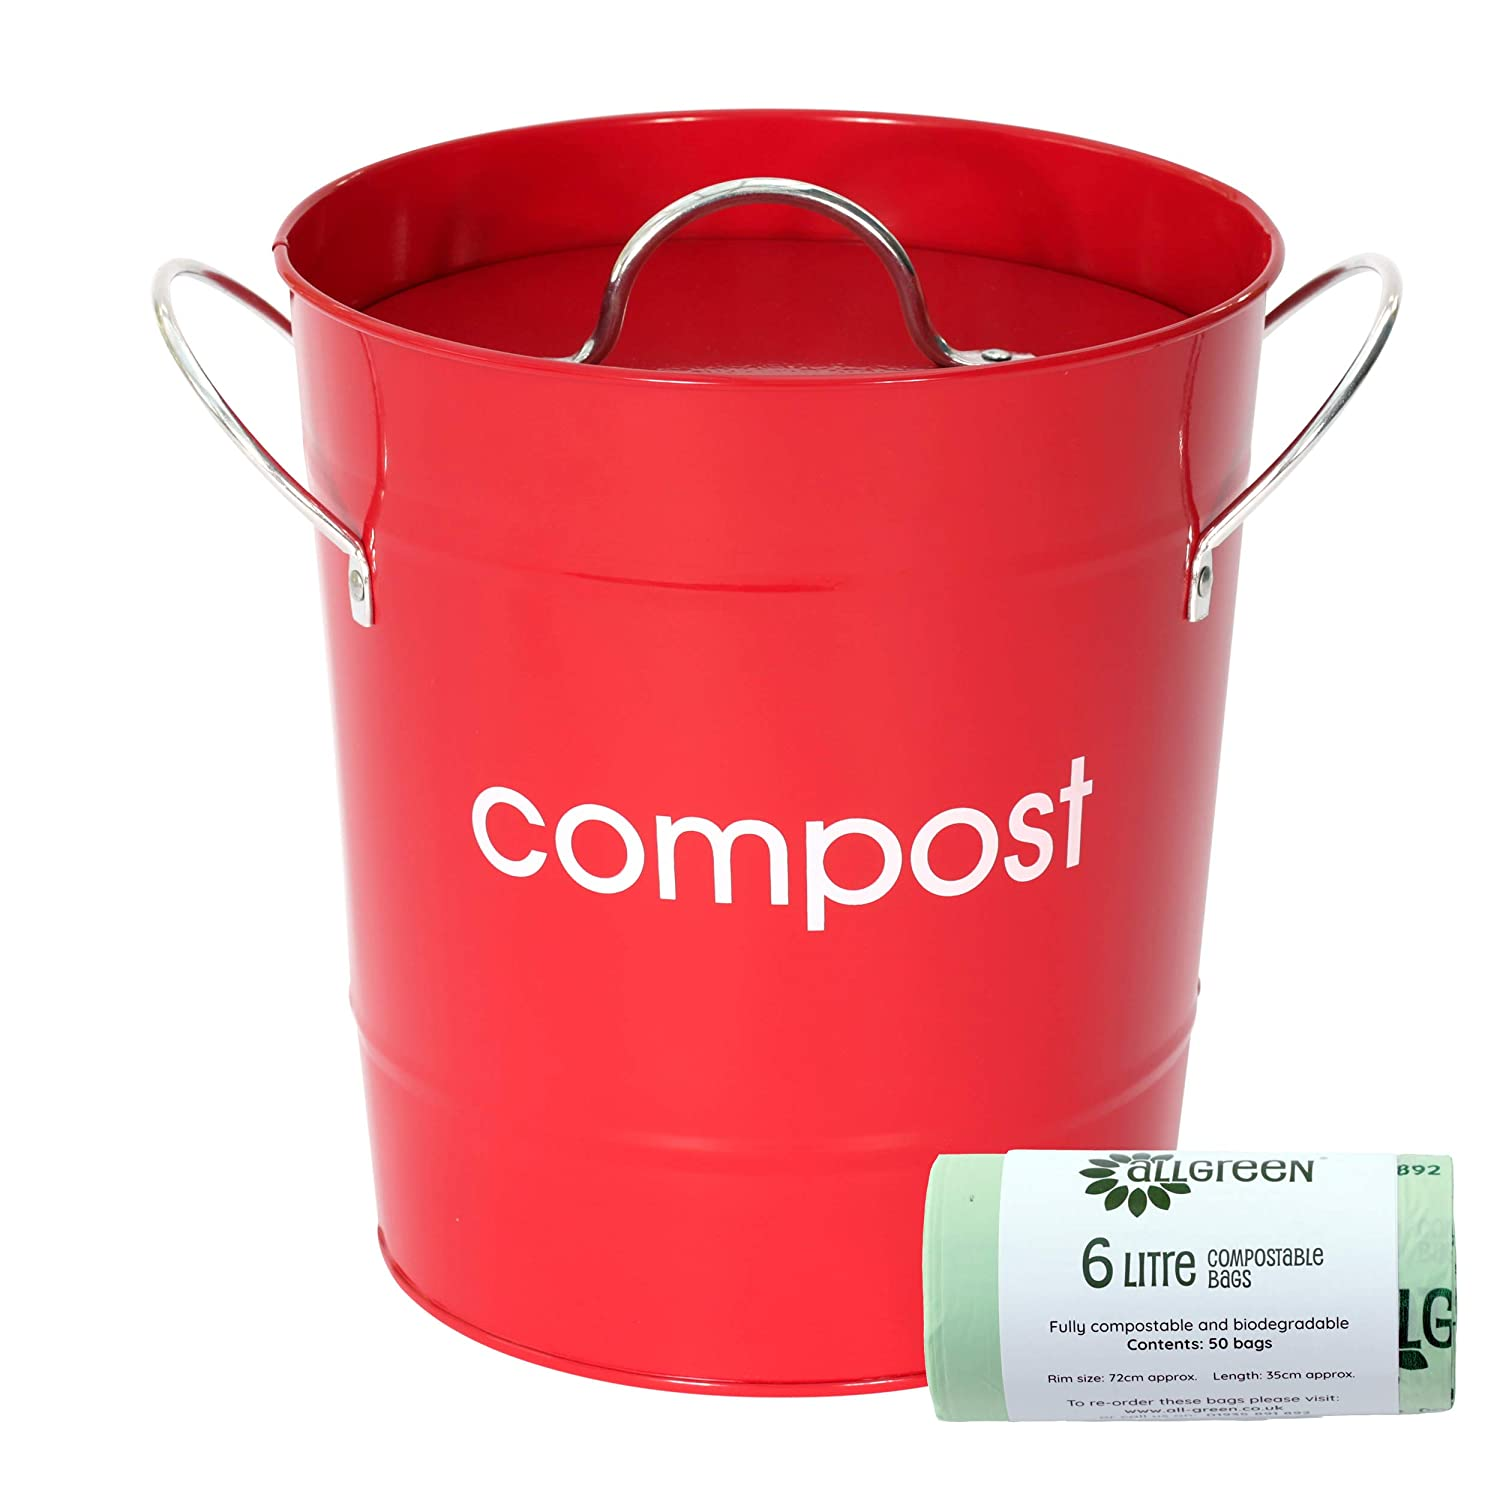 Red Metal Mini Kitchen Compost Caddy & 50x All-Green Biobags - Composting Bin for Food Waste Recycling